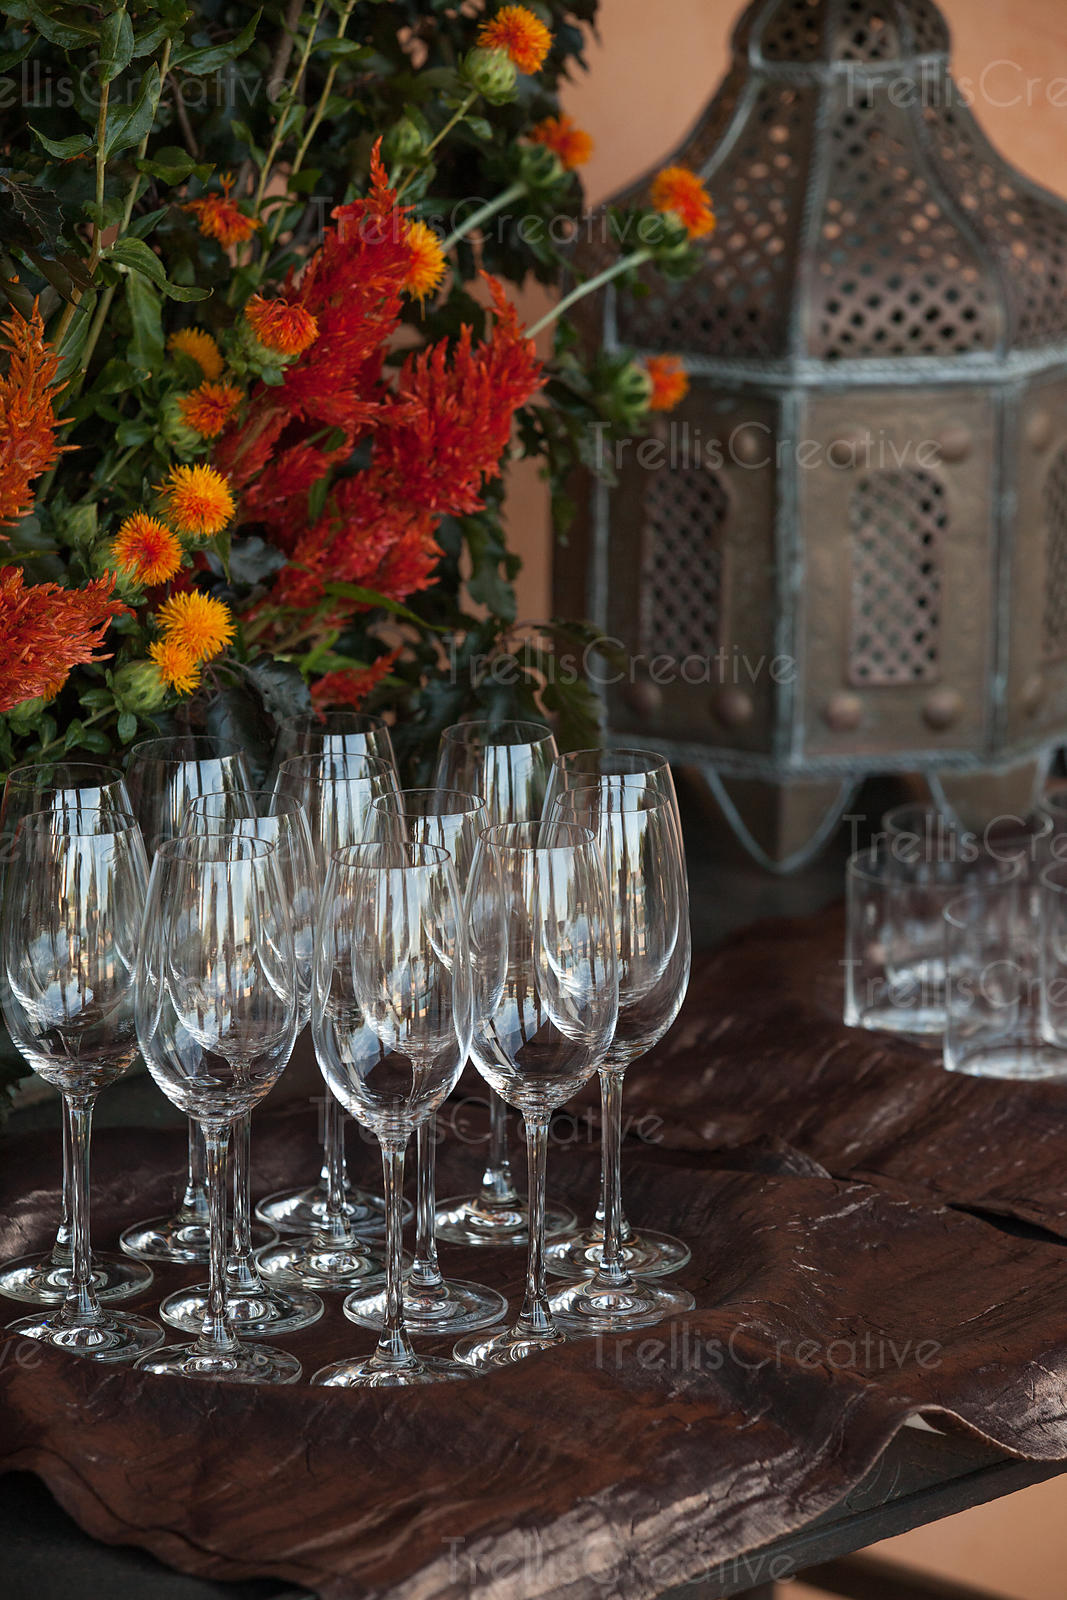 Flower arrangement with  wine glasses on table